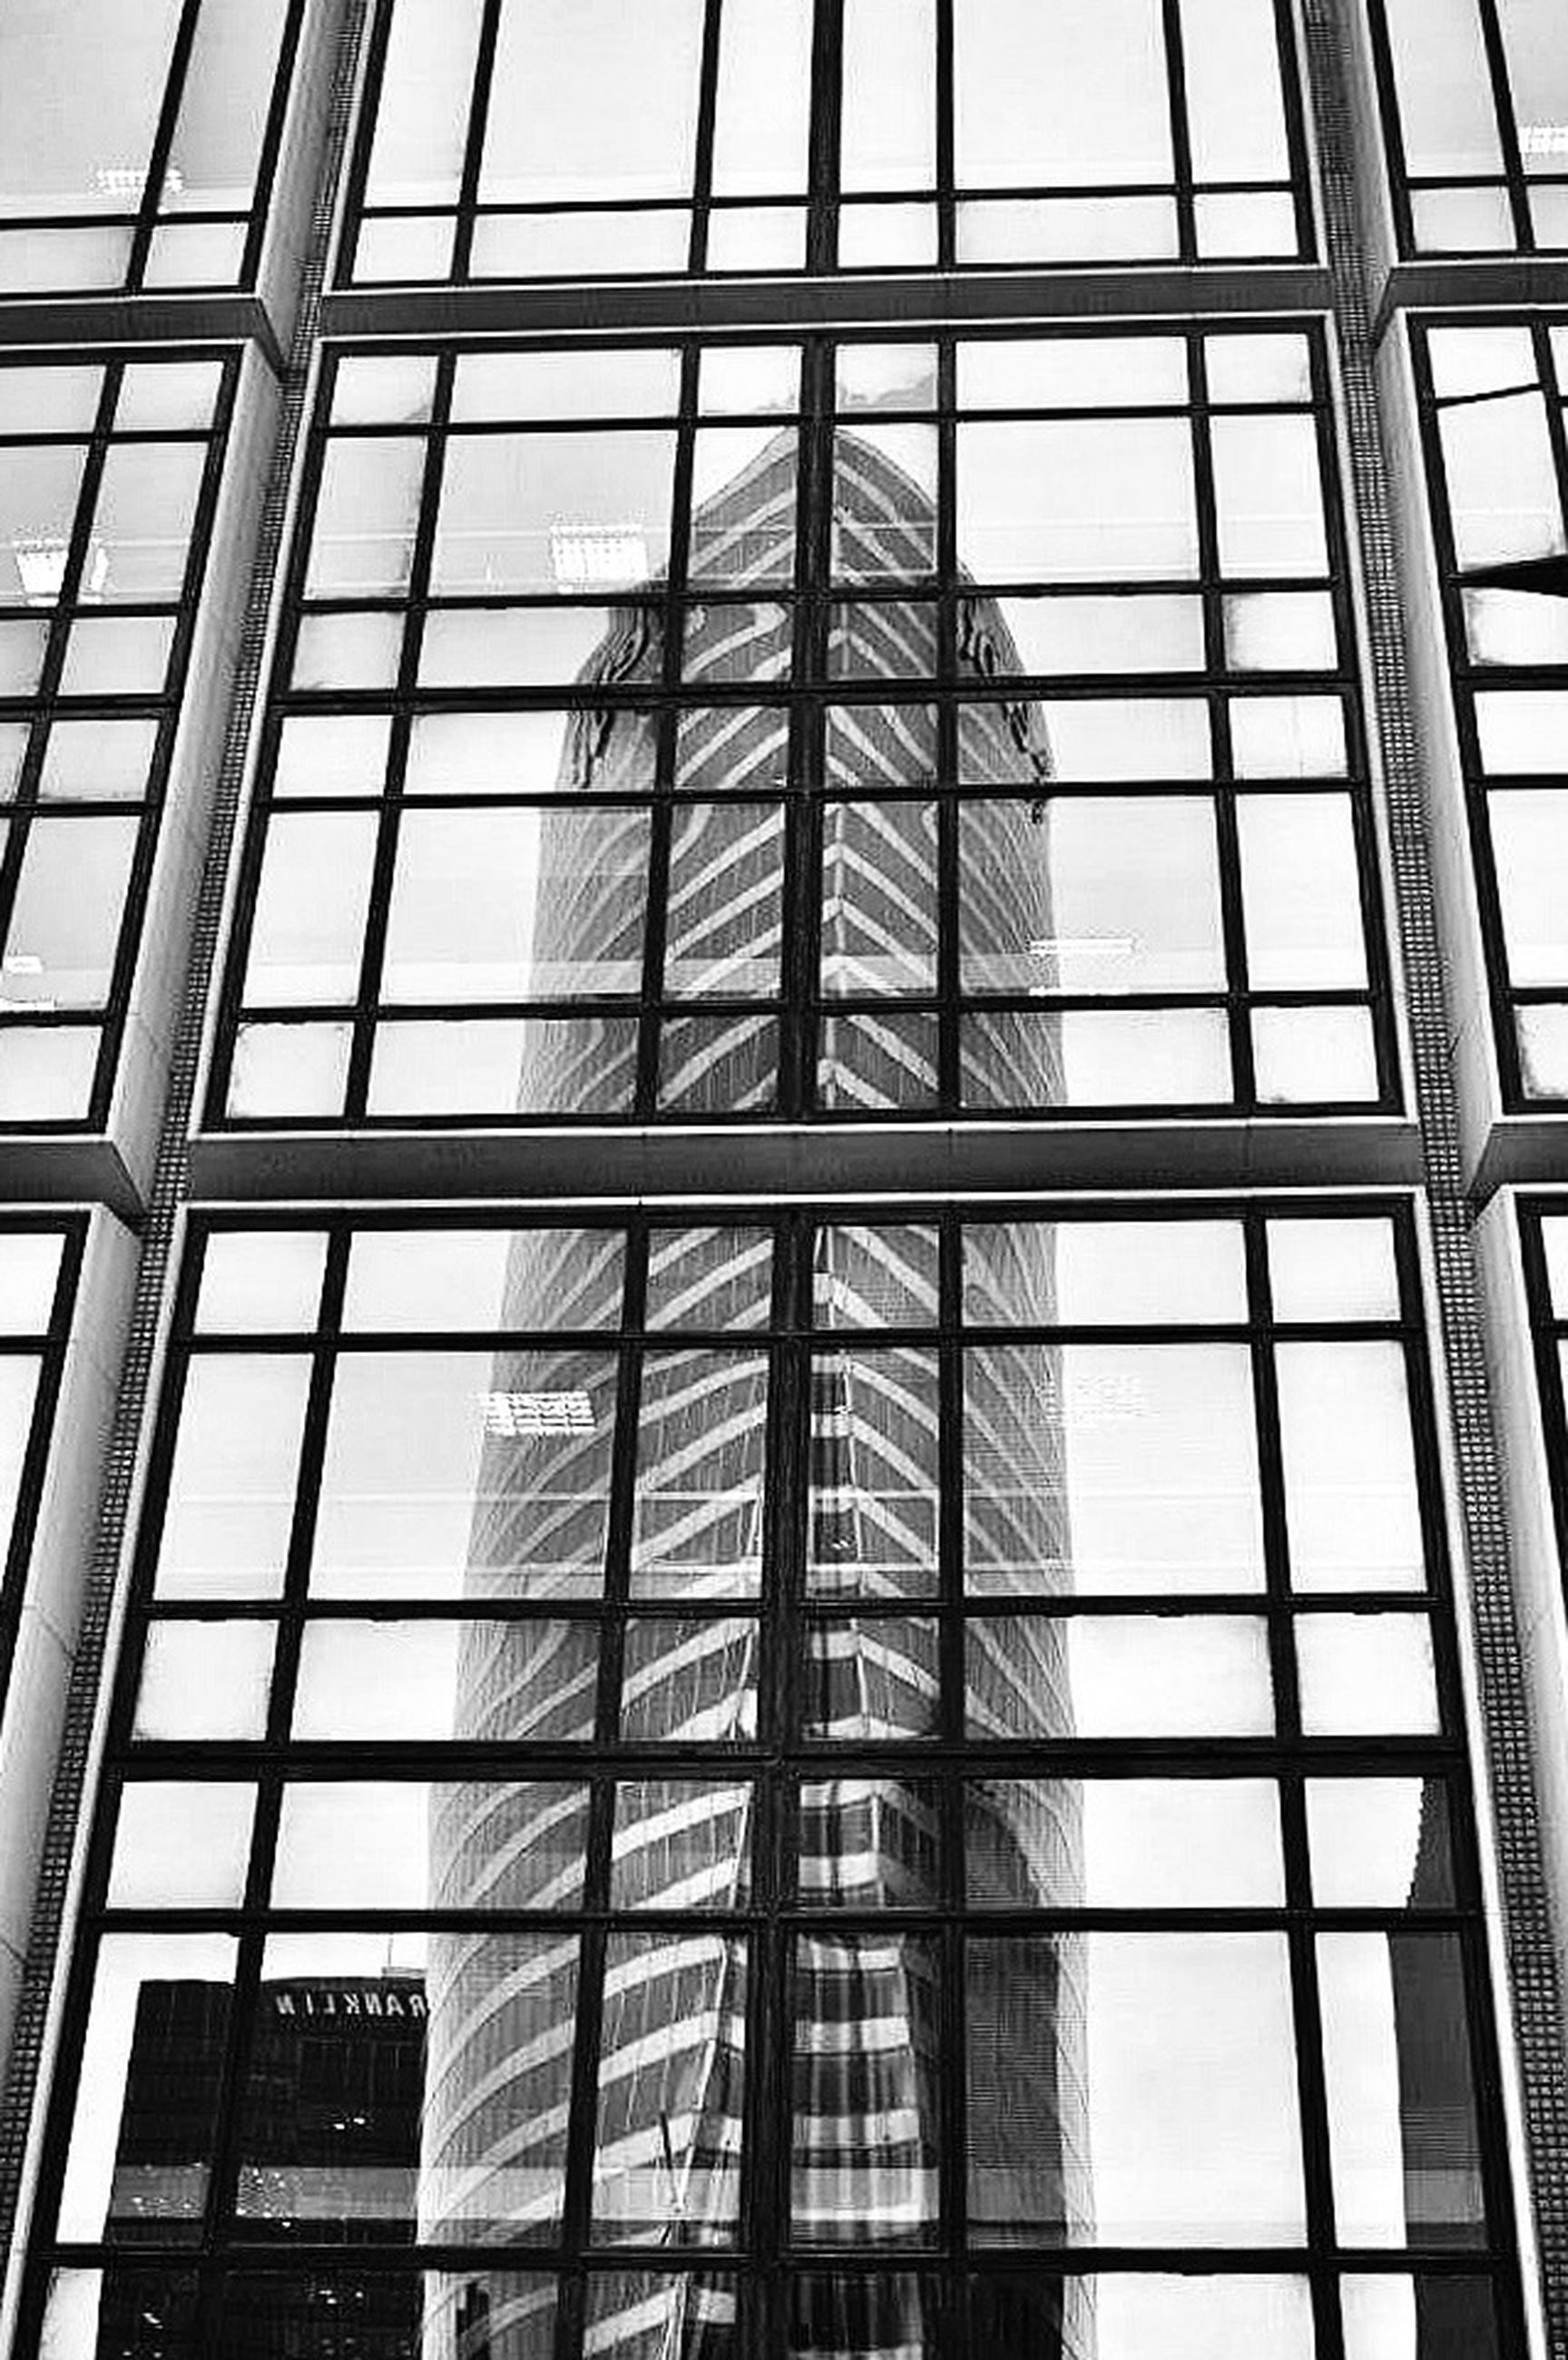 architecture, glass - material, built structure, modern, building exterior, low angle view, window, office building, transparent, reflection, city, skyscraper, glass, indoors, tall - high, sky, building, tower, day, architectural feature